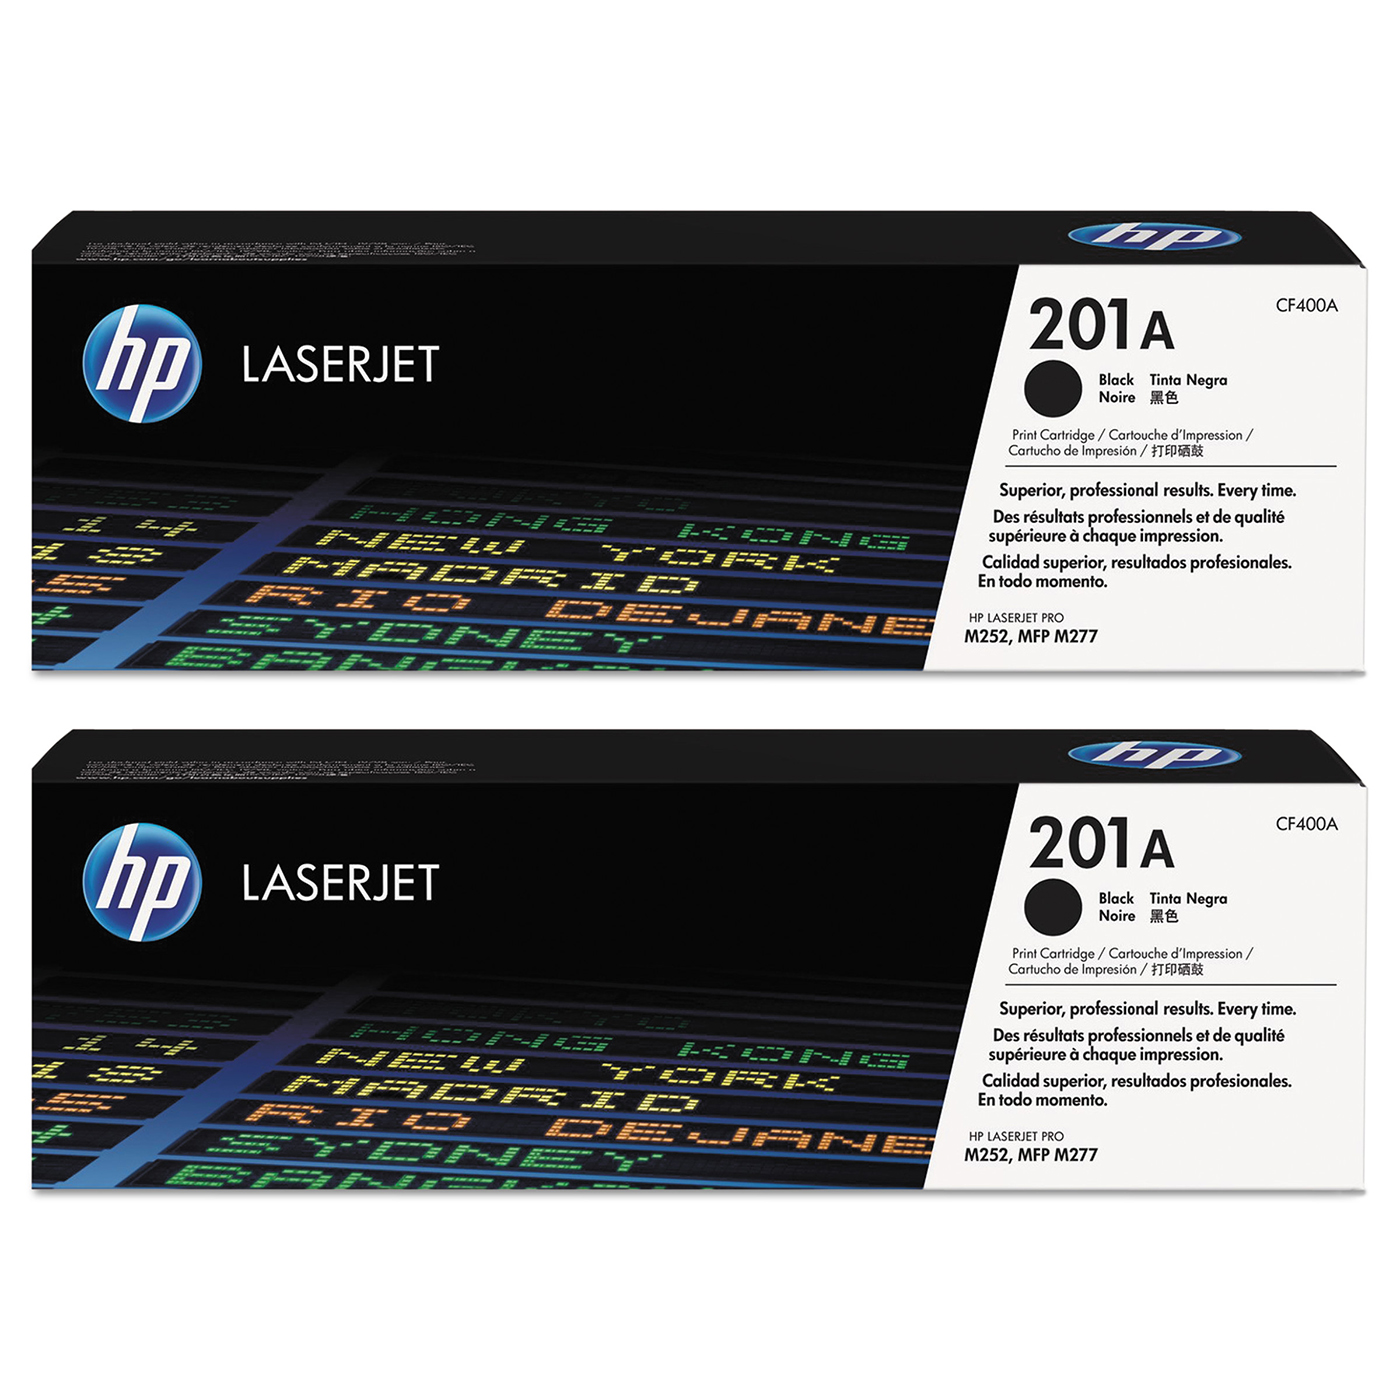 Buy two HP201A Black Toner and get $25 off